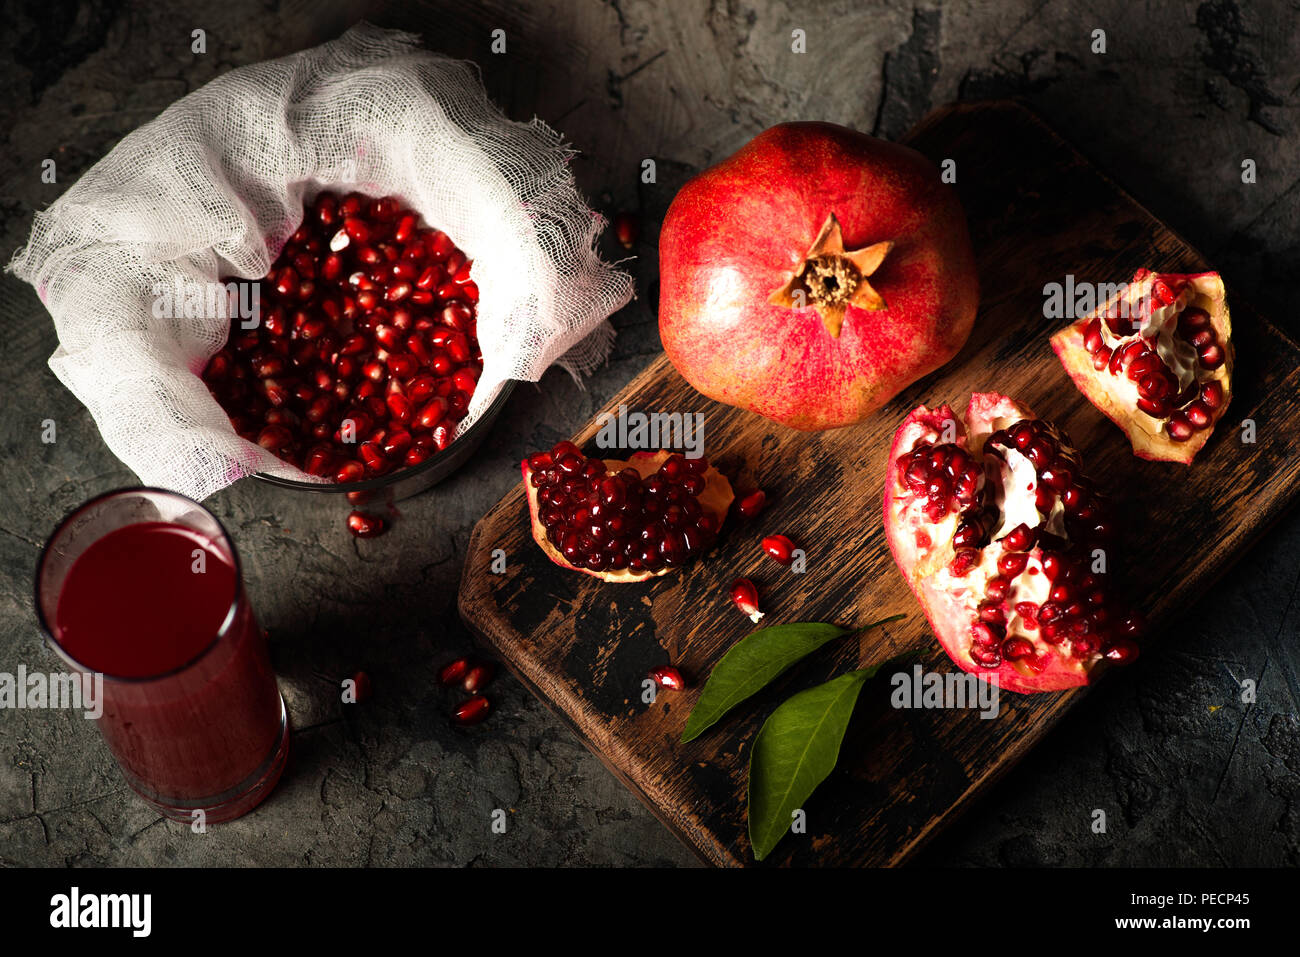 Pomegranate fruits with grains and leaves on the table. Make juice. Top view. Dark moody. - Stock Image